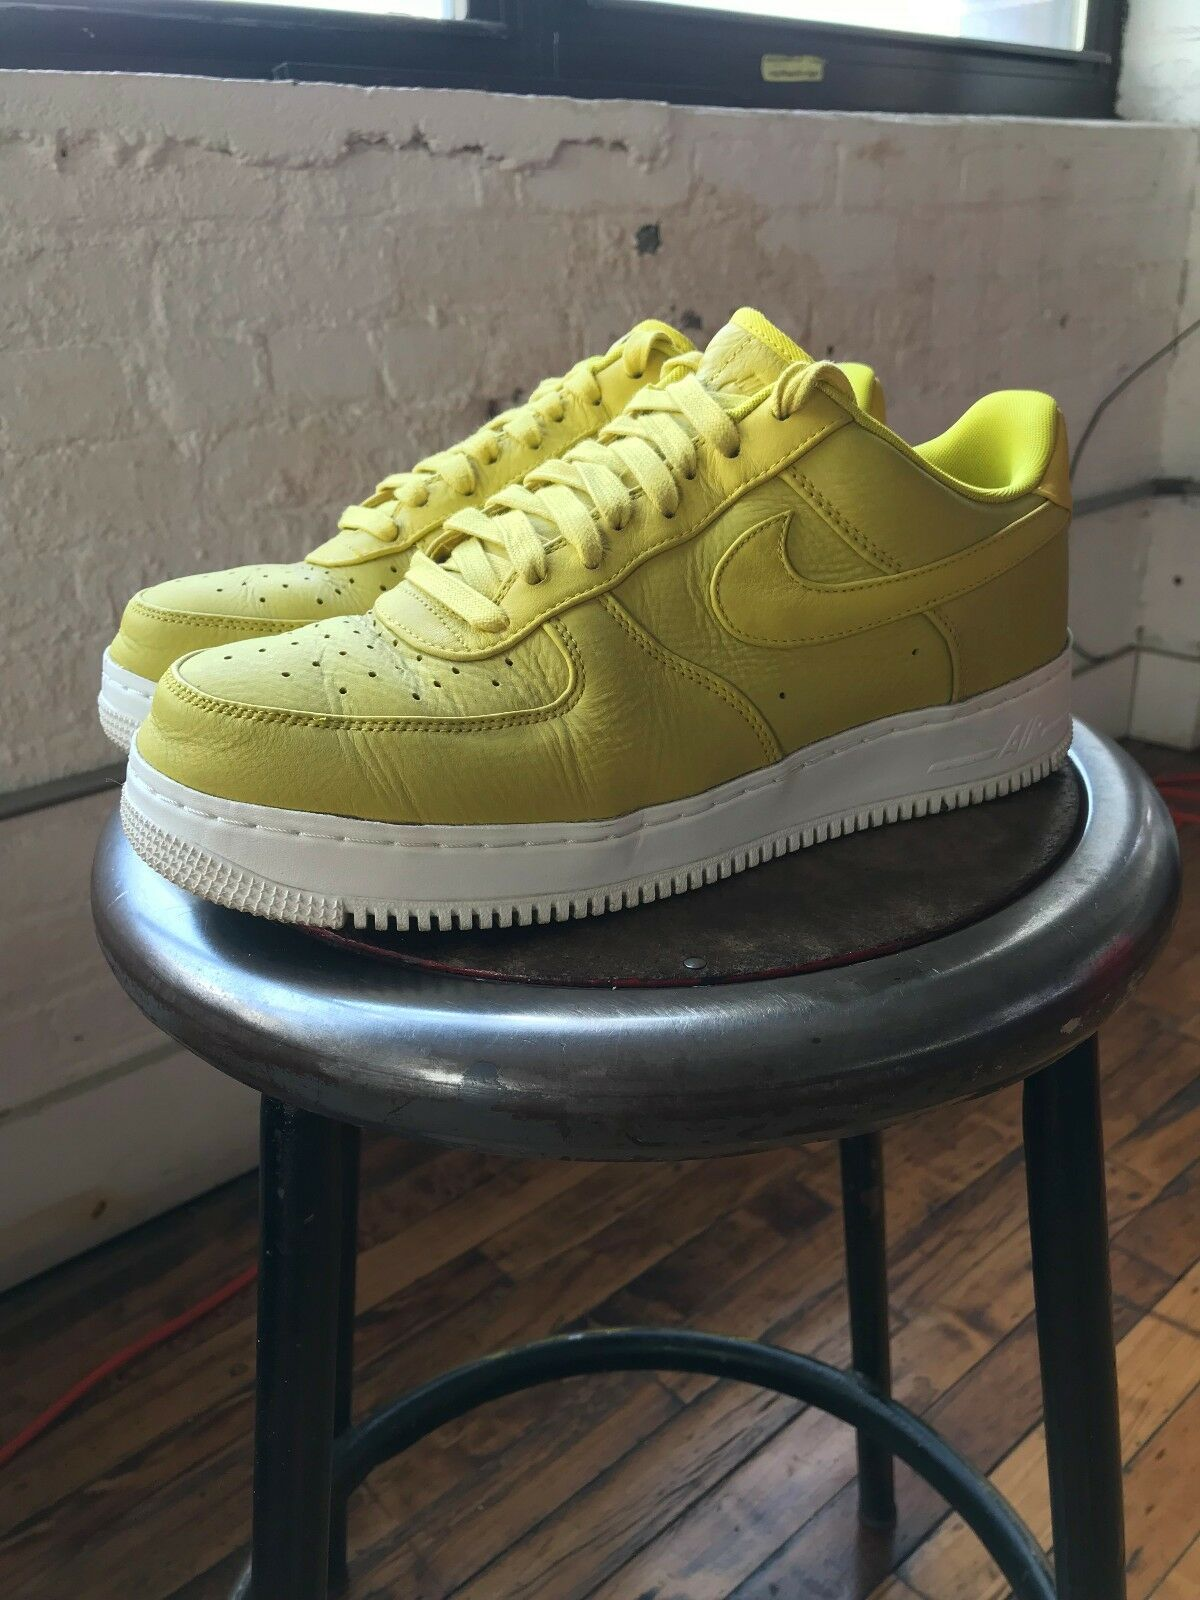 Citron 5 Nikelab Lab Sz Low Nike 10 1 Bright Force Air qORxUPfp